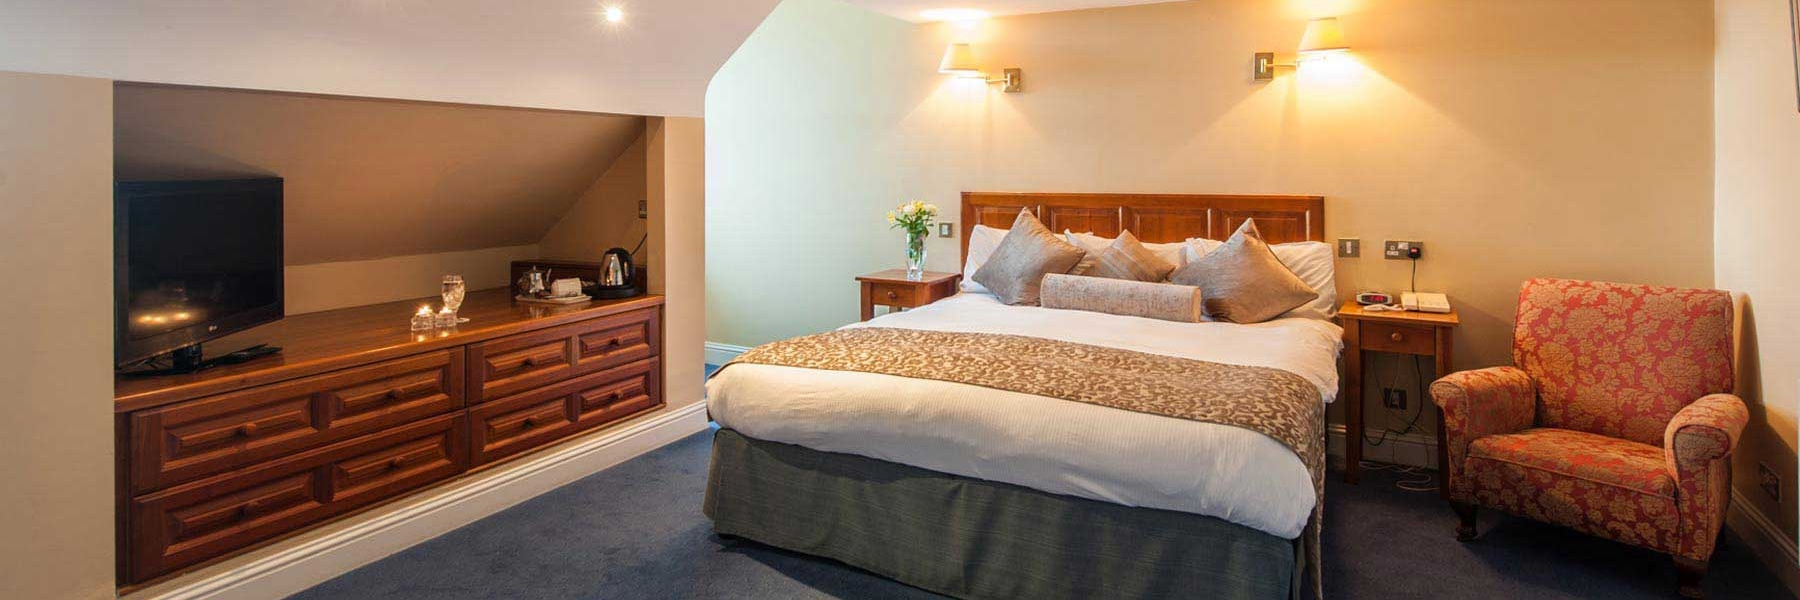 family-run traditional hotel in Blarney